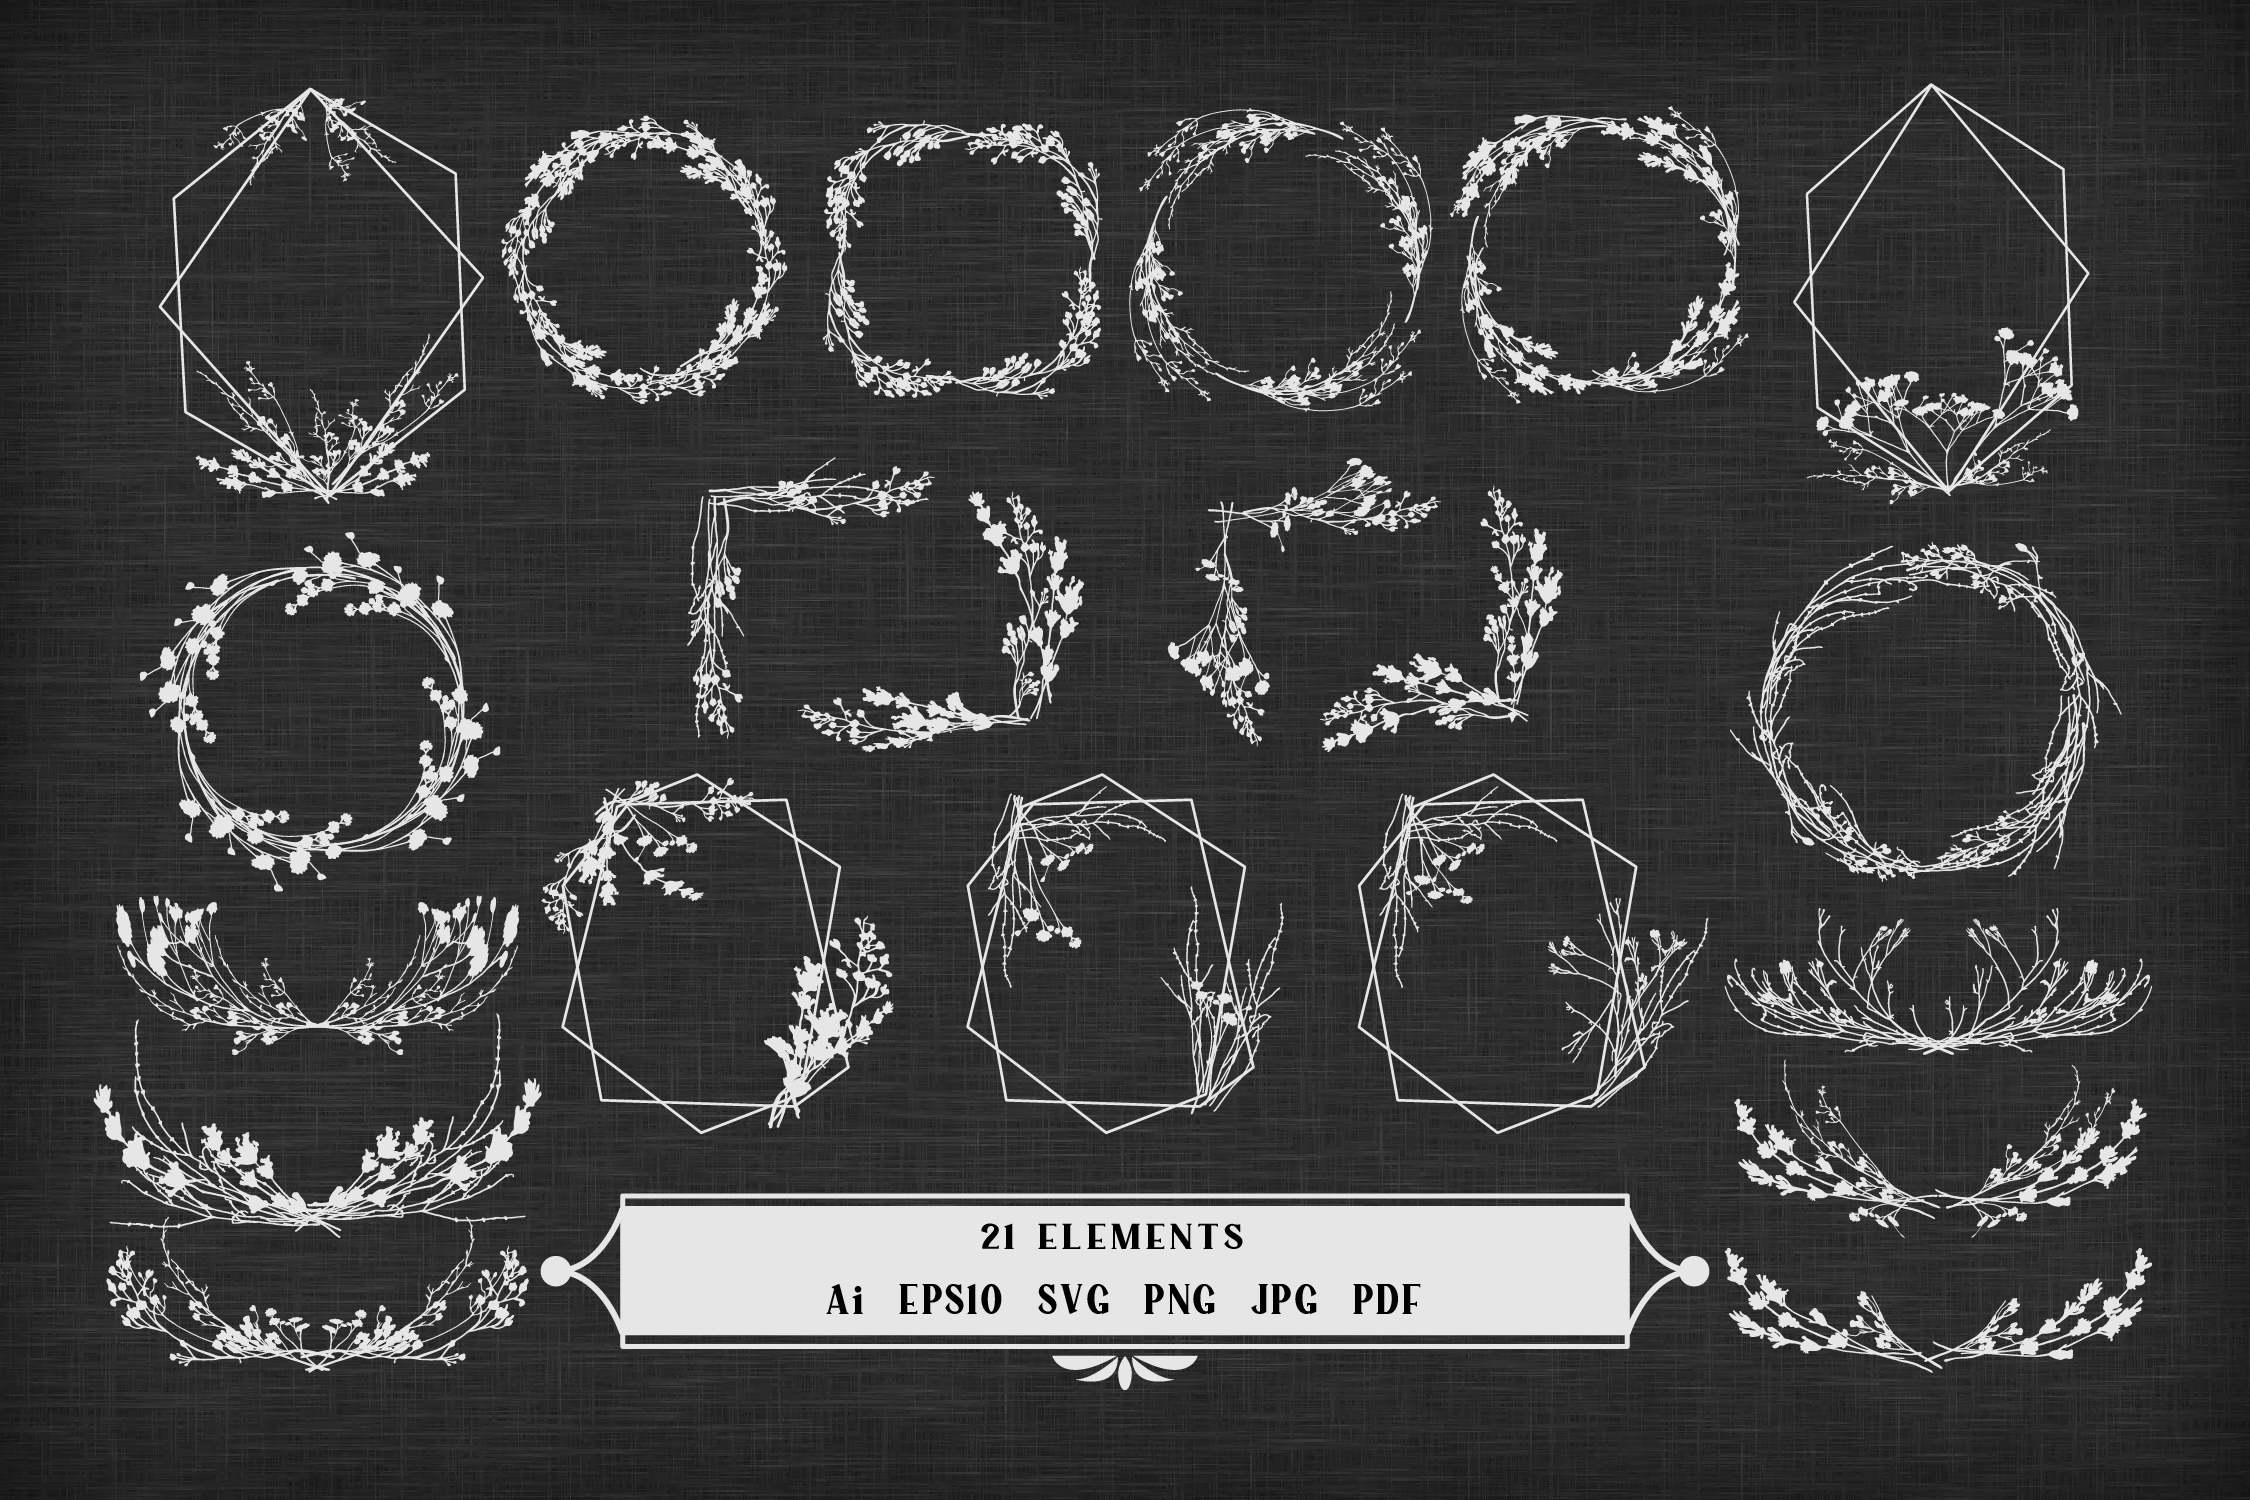 Frames from Silhouettes of Dried Plants SVG File